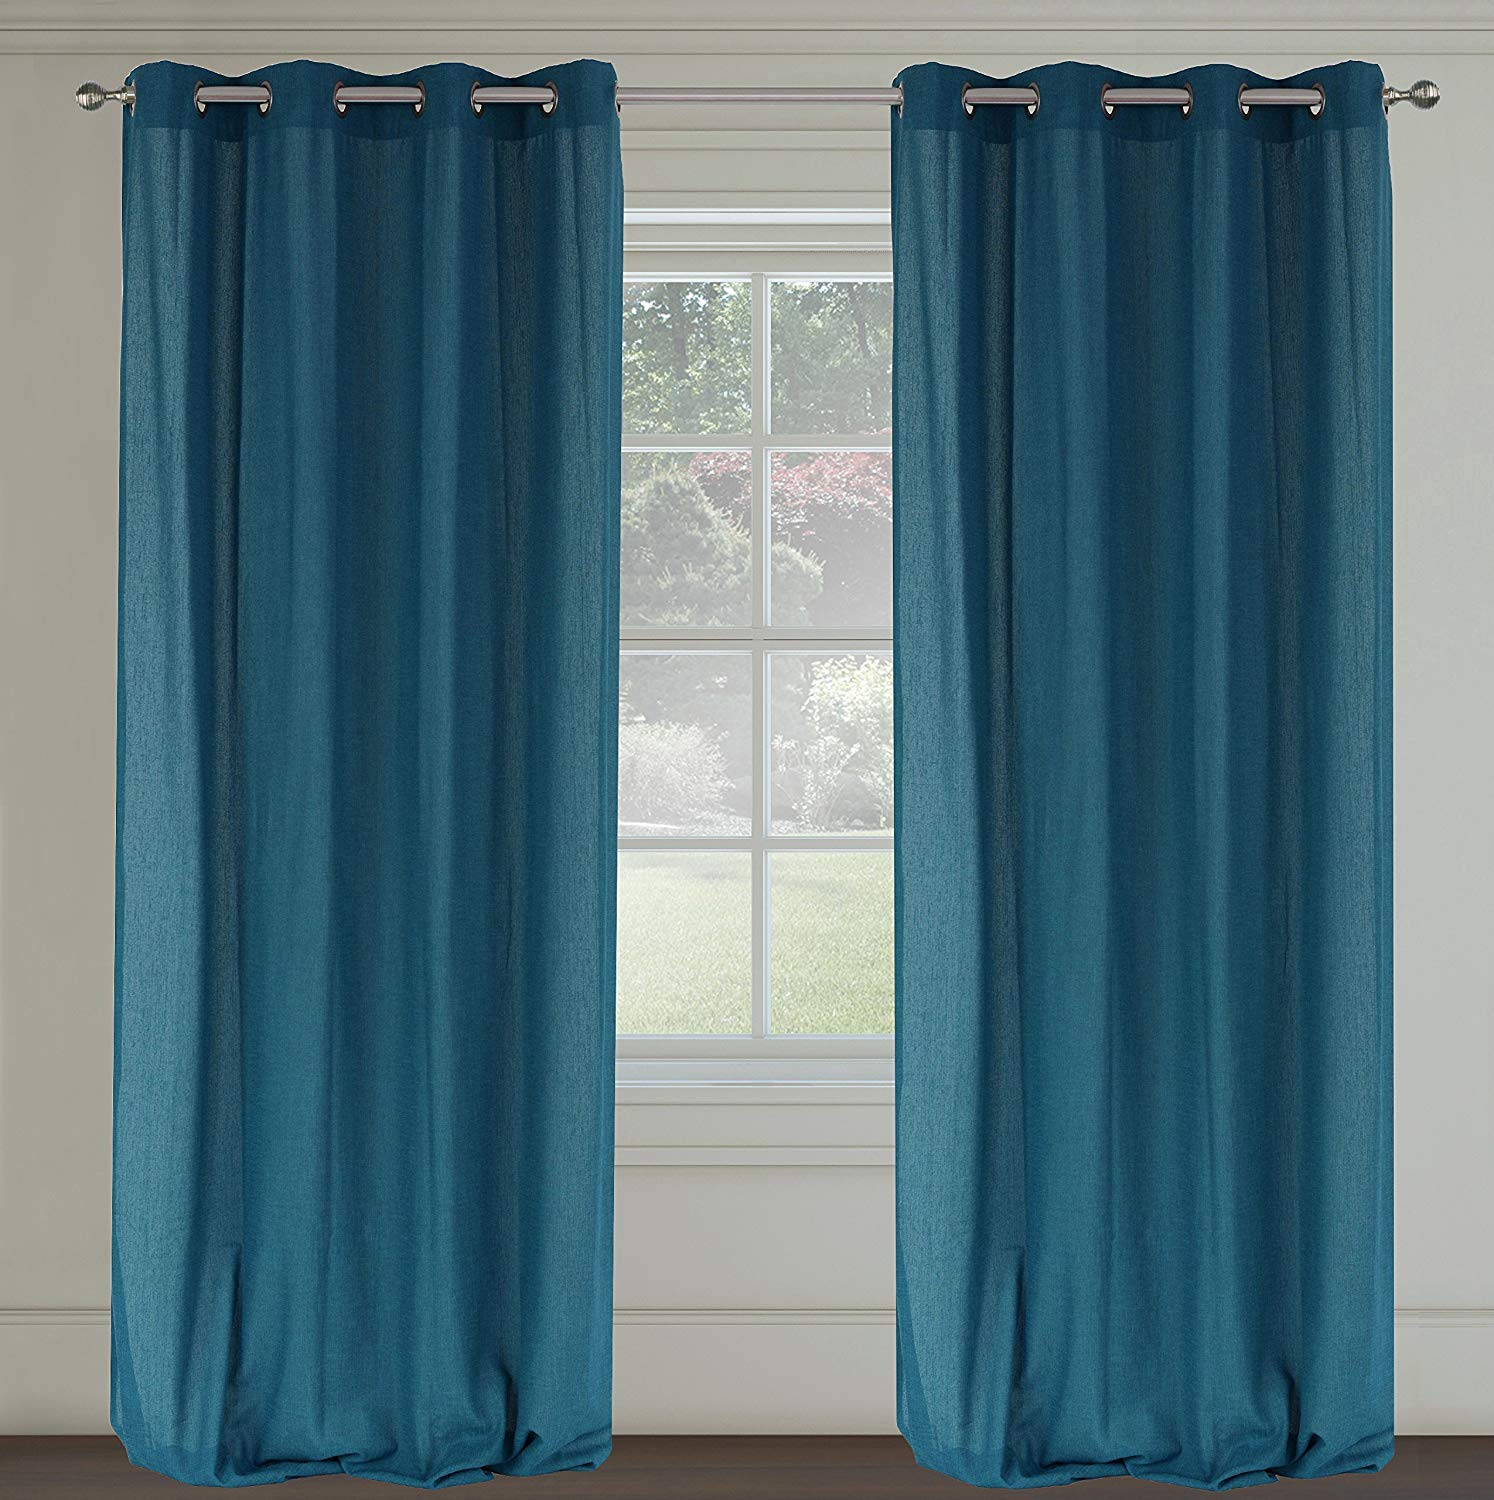 6. Rio Lined Pinch Pleated Drapes Ready To Hang with Curtain Hooks